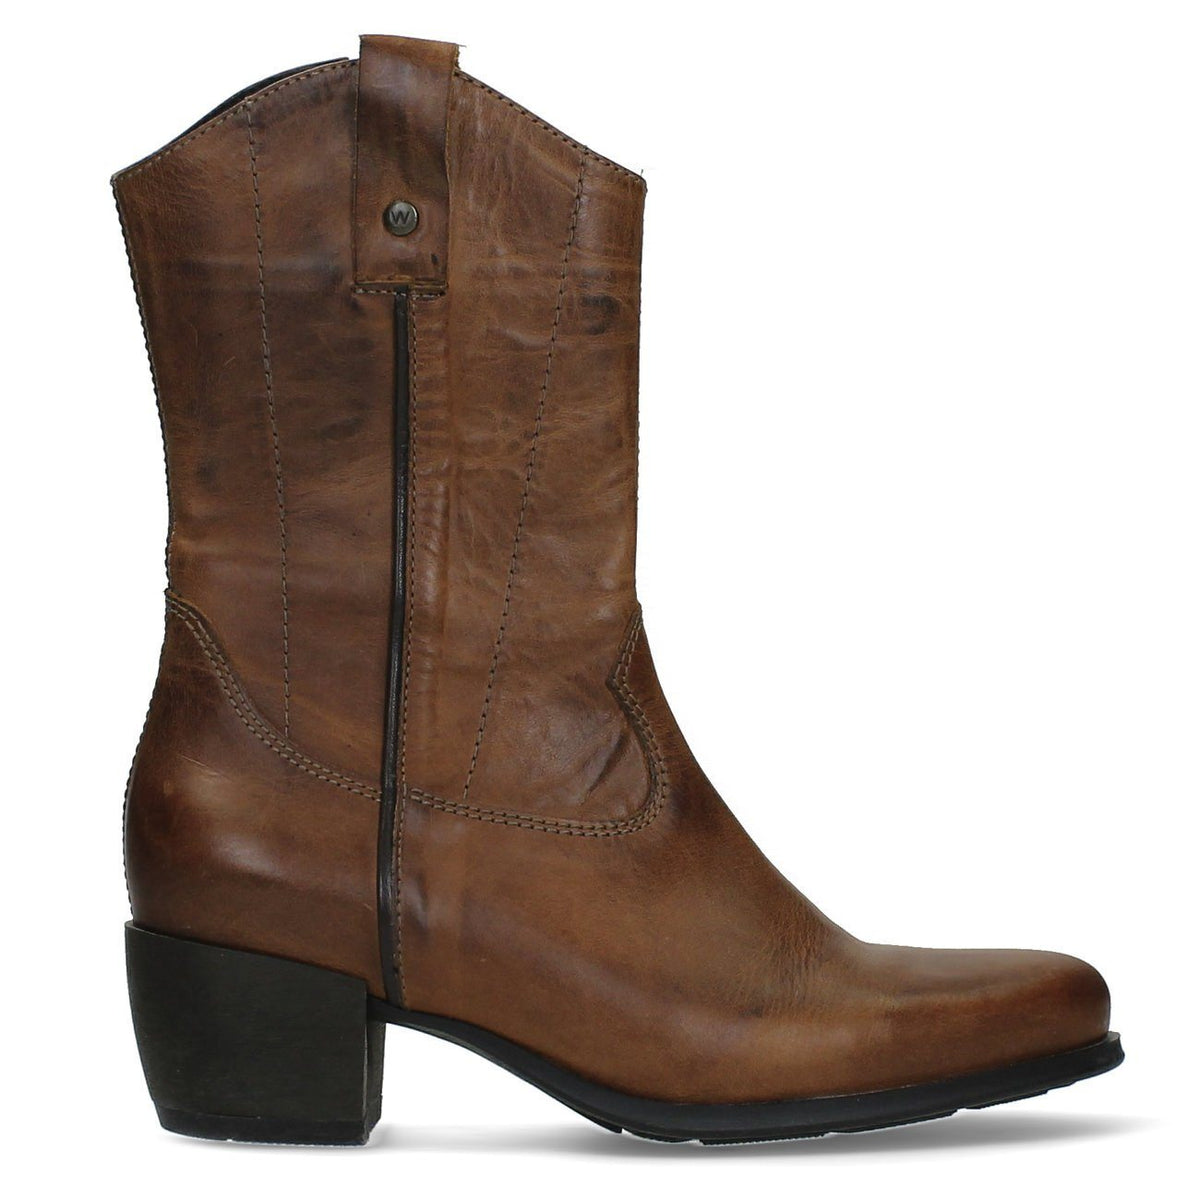 Wolky, Caprock, Boots, Softy Wax Leather, Ladies, Cognac Boots Wolky